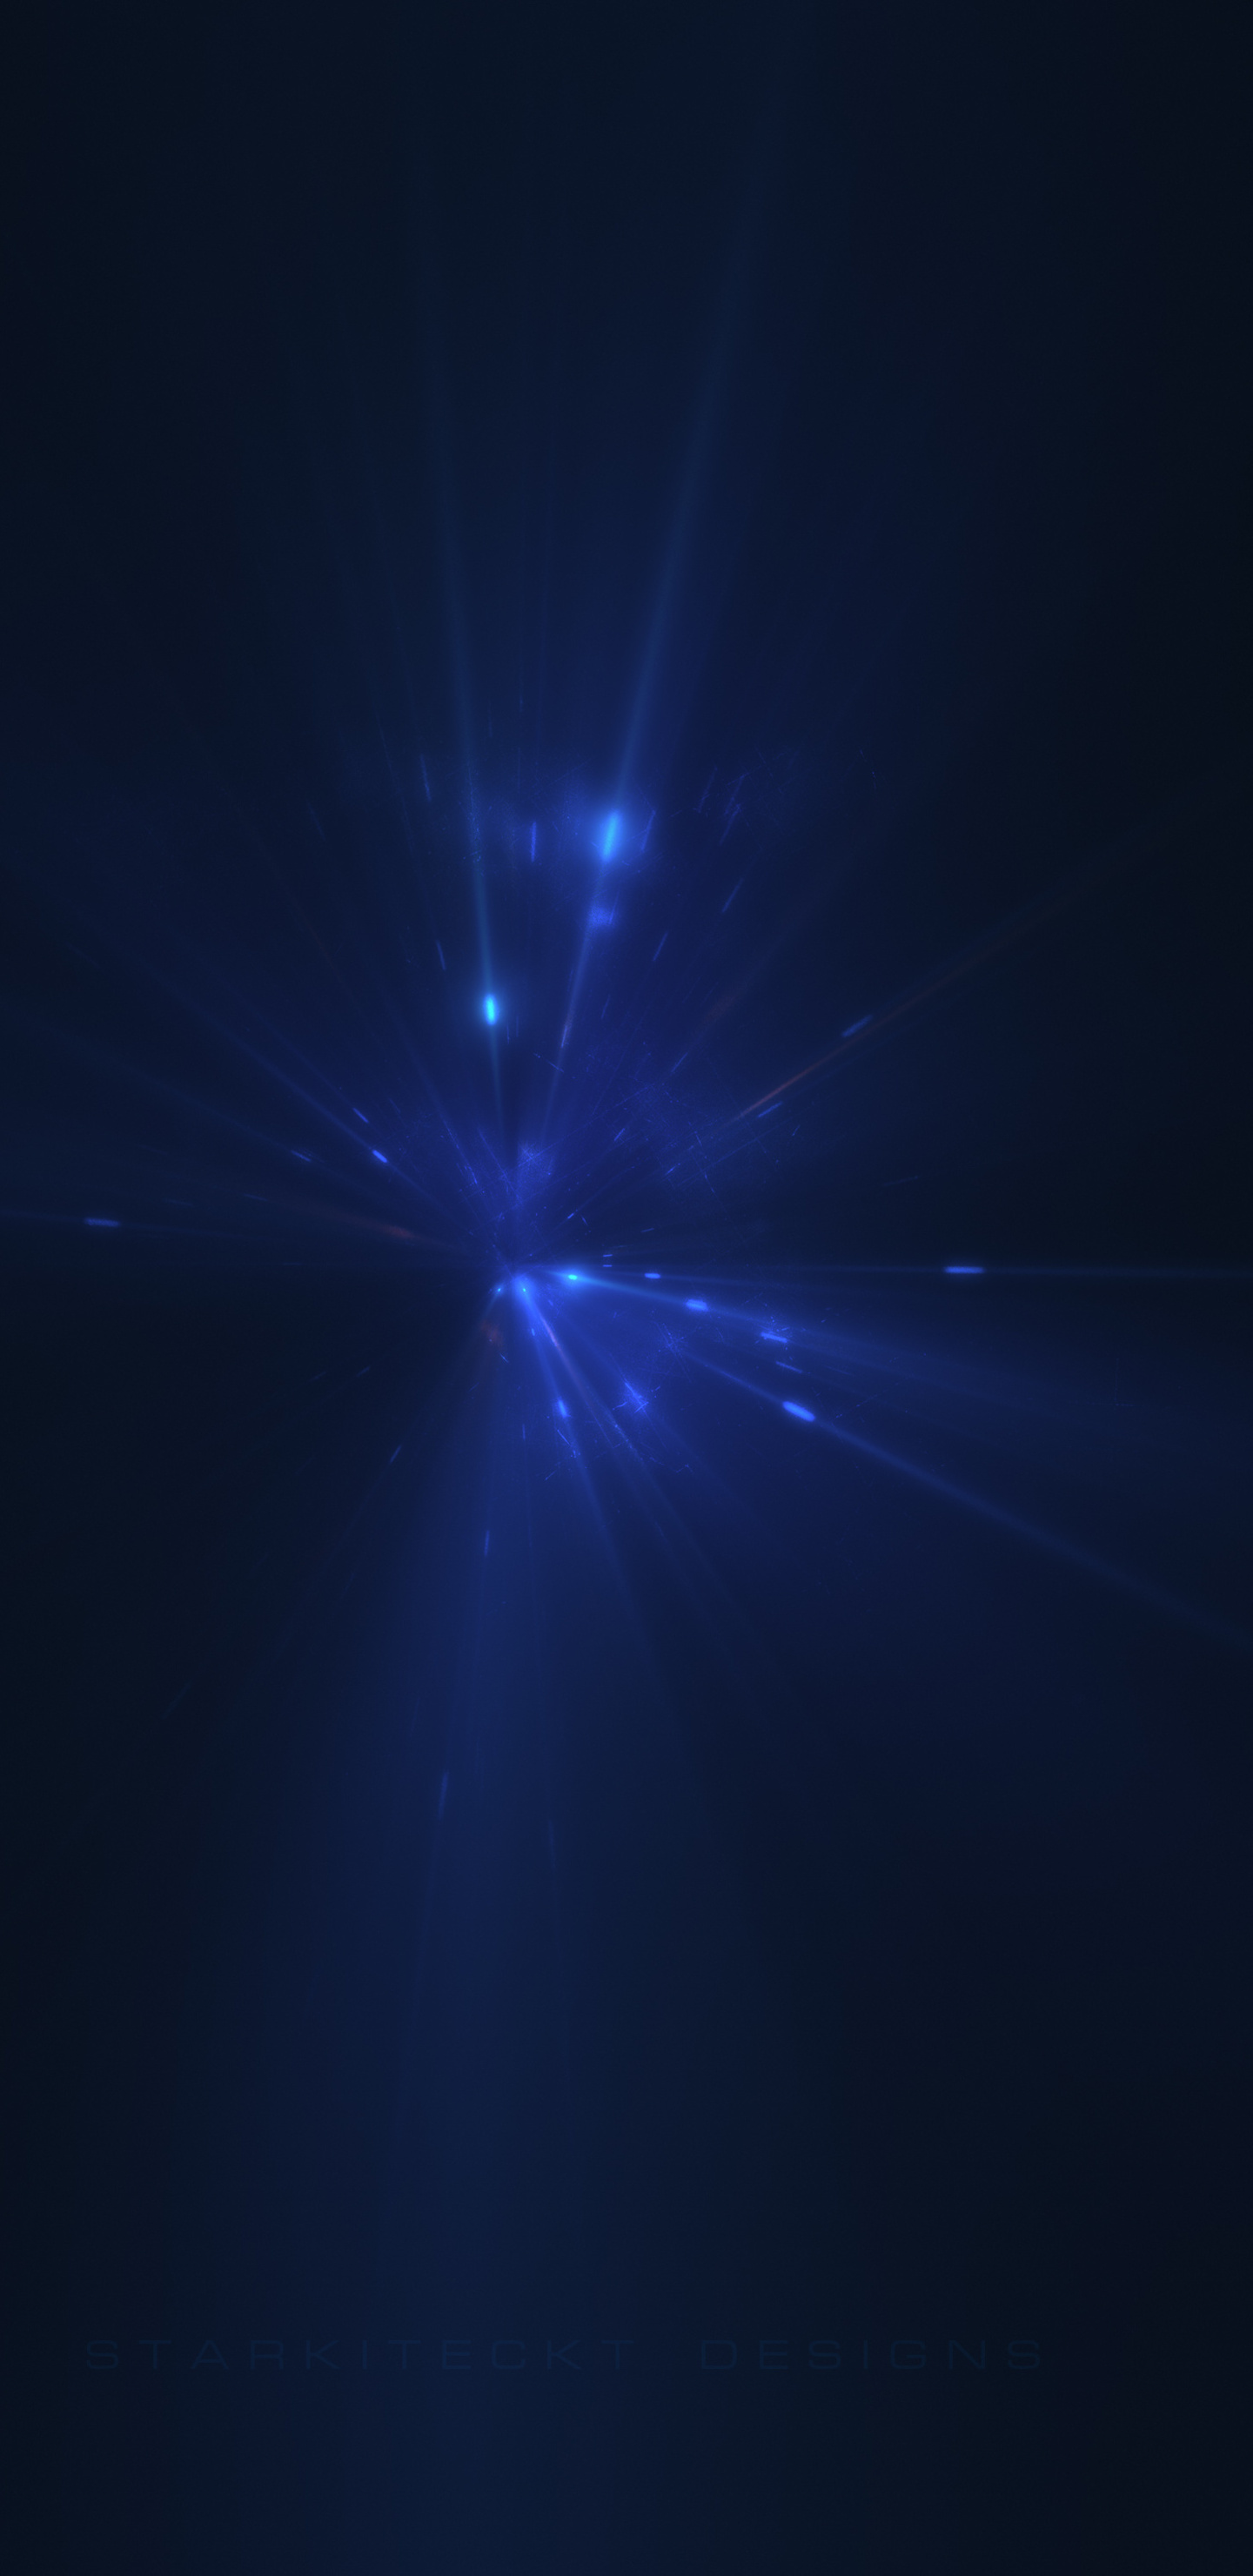 1440x2960 last blue light digital art 5k samsung galaxy note 98 s9